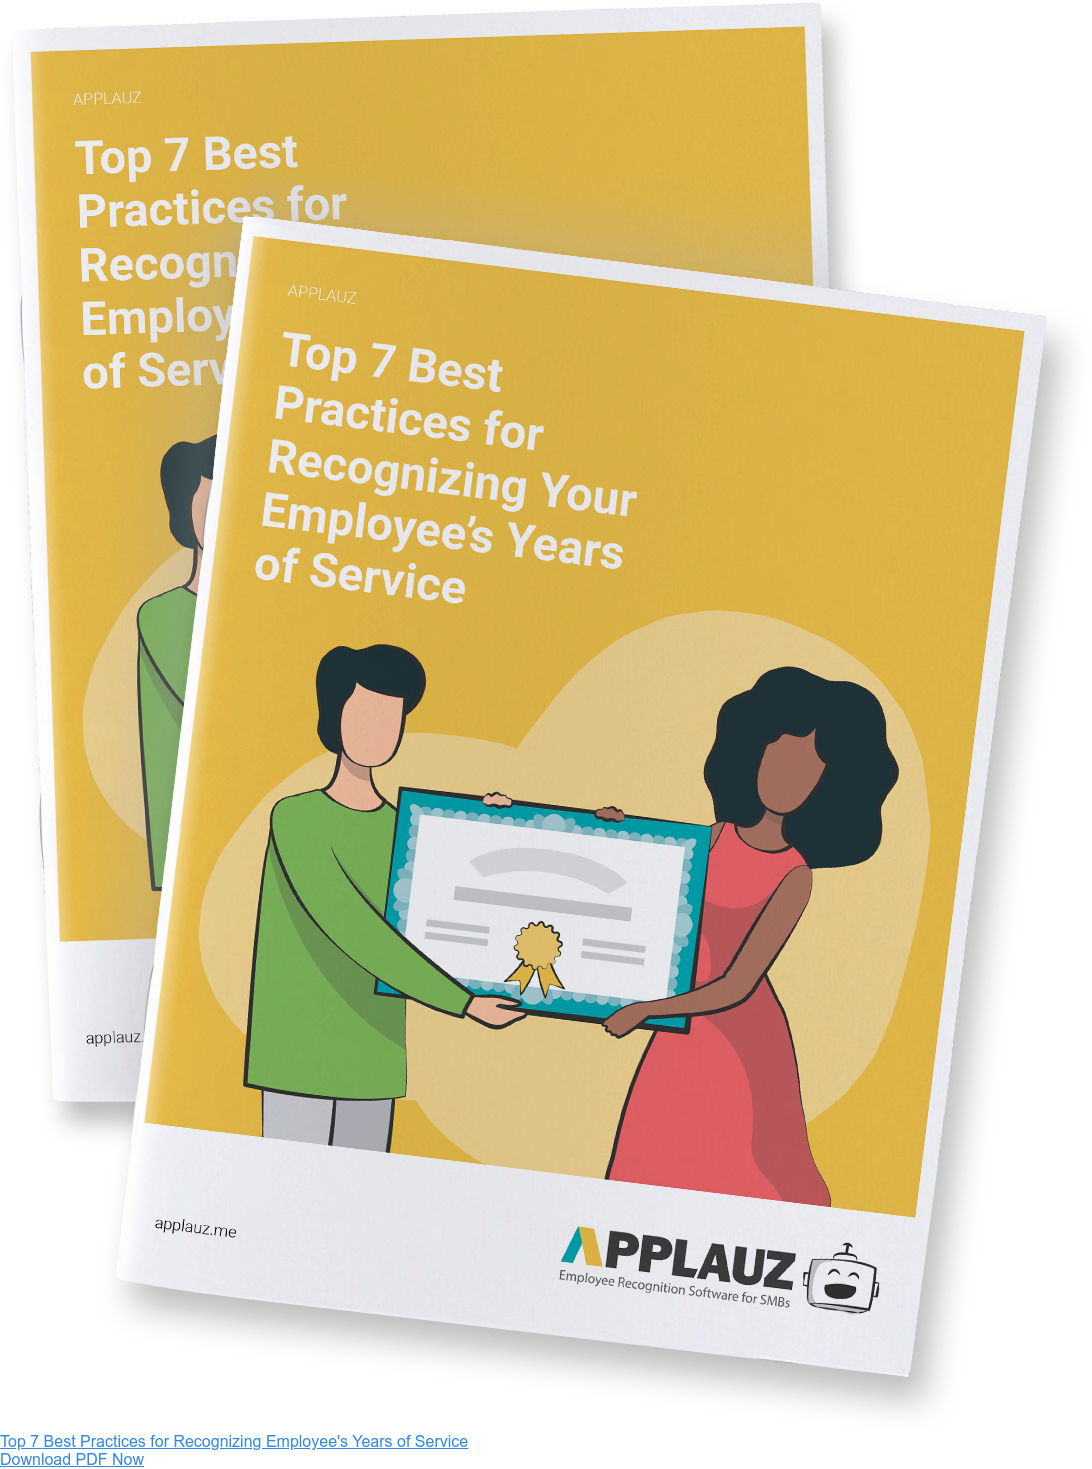 Top 7 Best Practices for Recognizing Employee's Years of Service Download PDF Now